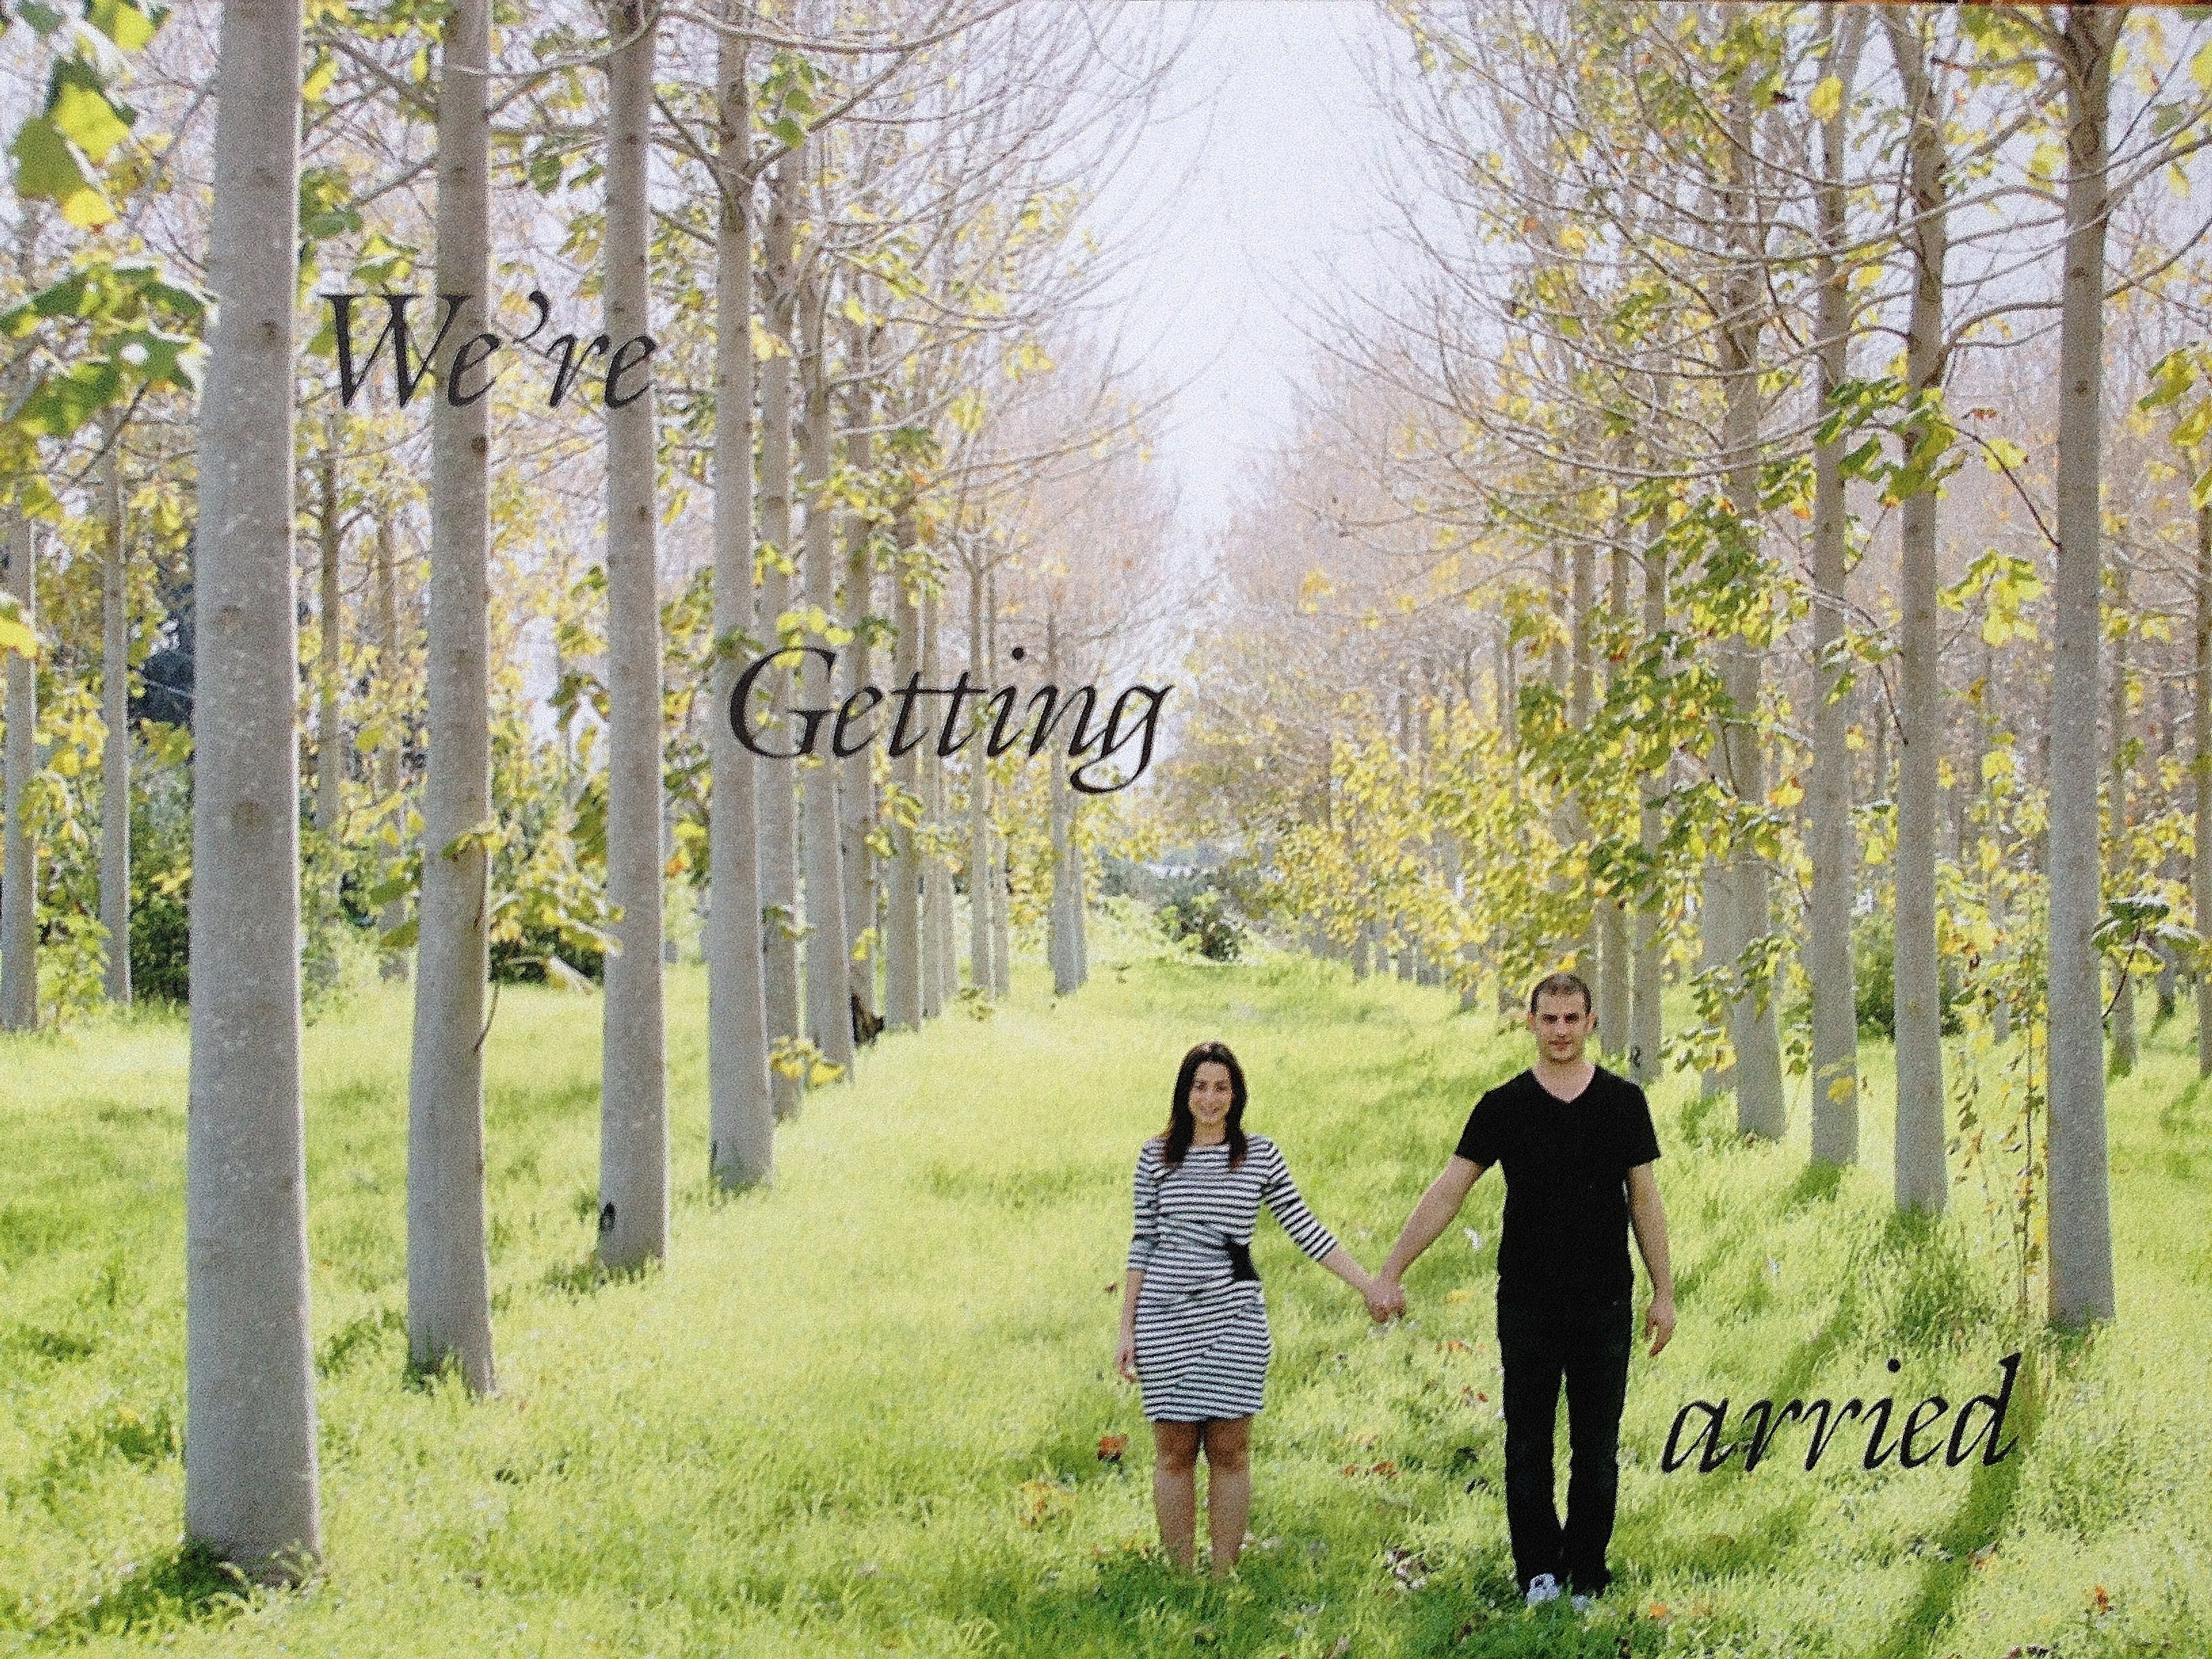 The Front of our wedding invitation. Picture was taken on a kibbutz in Israel. Yes, this is a real place!